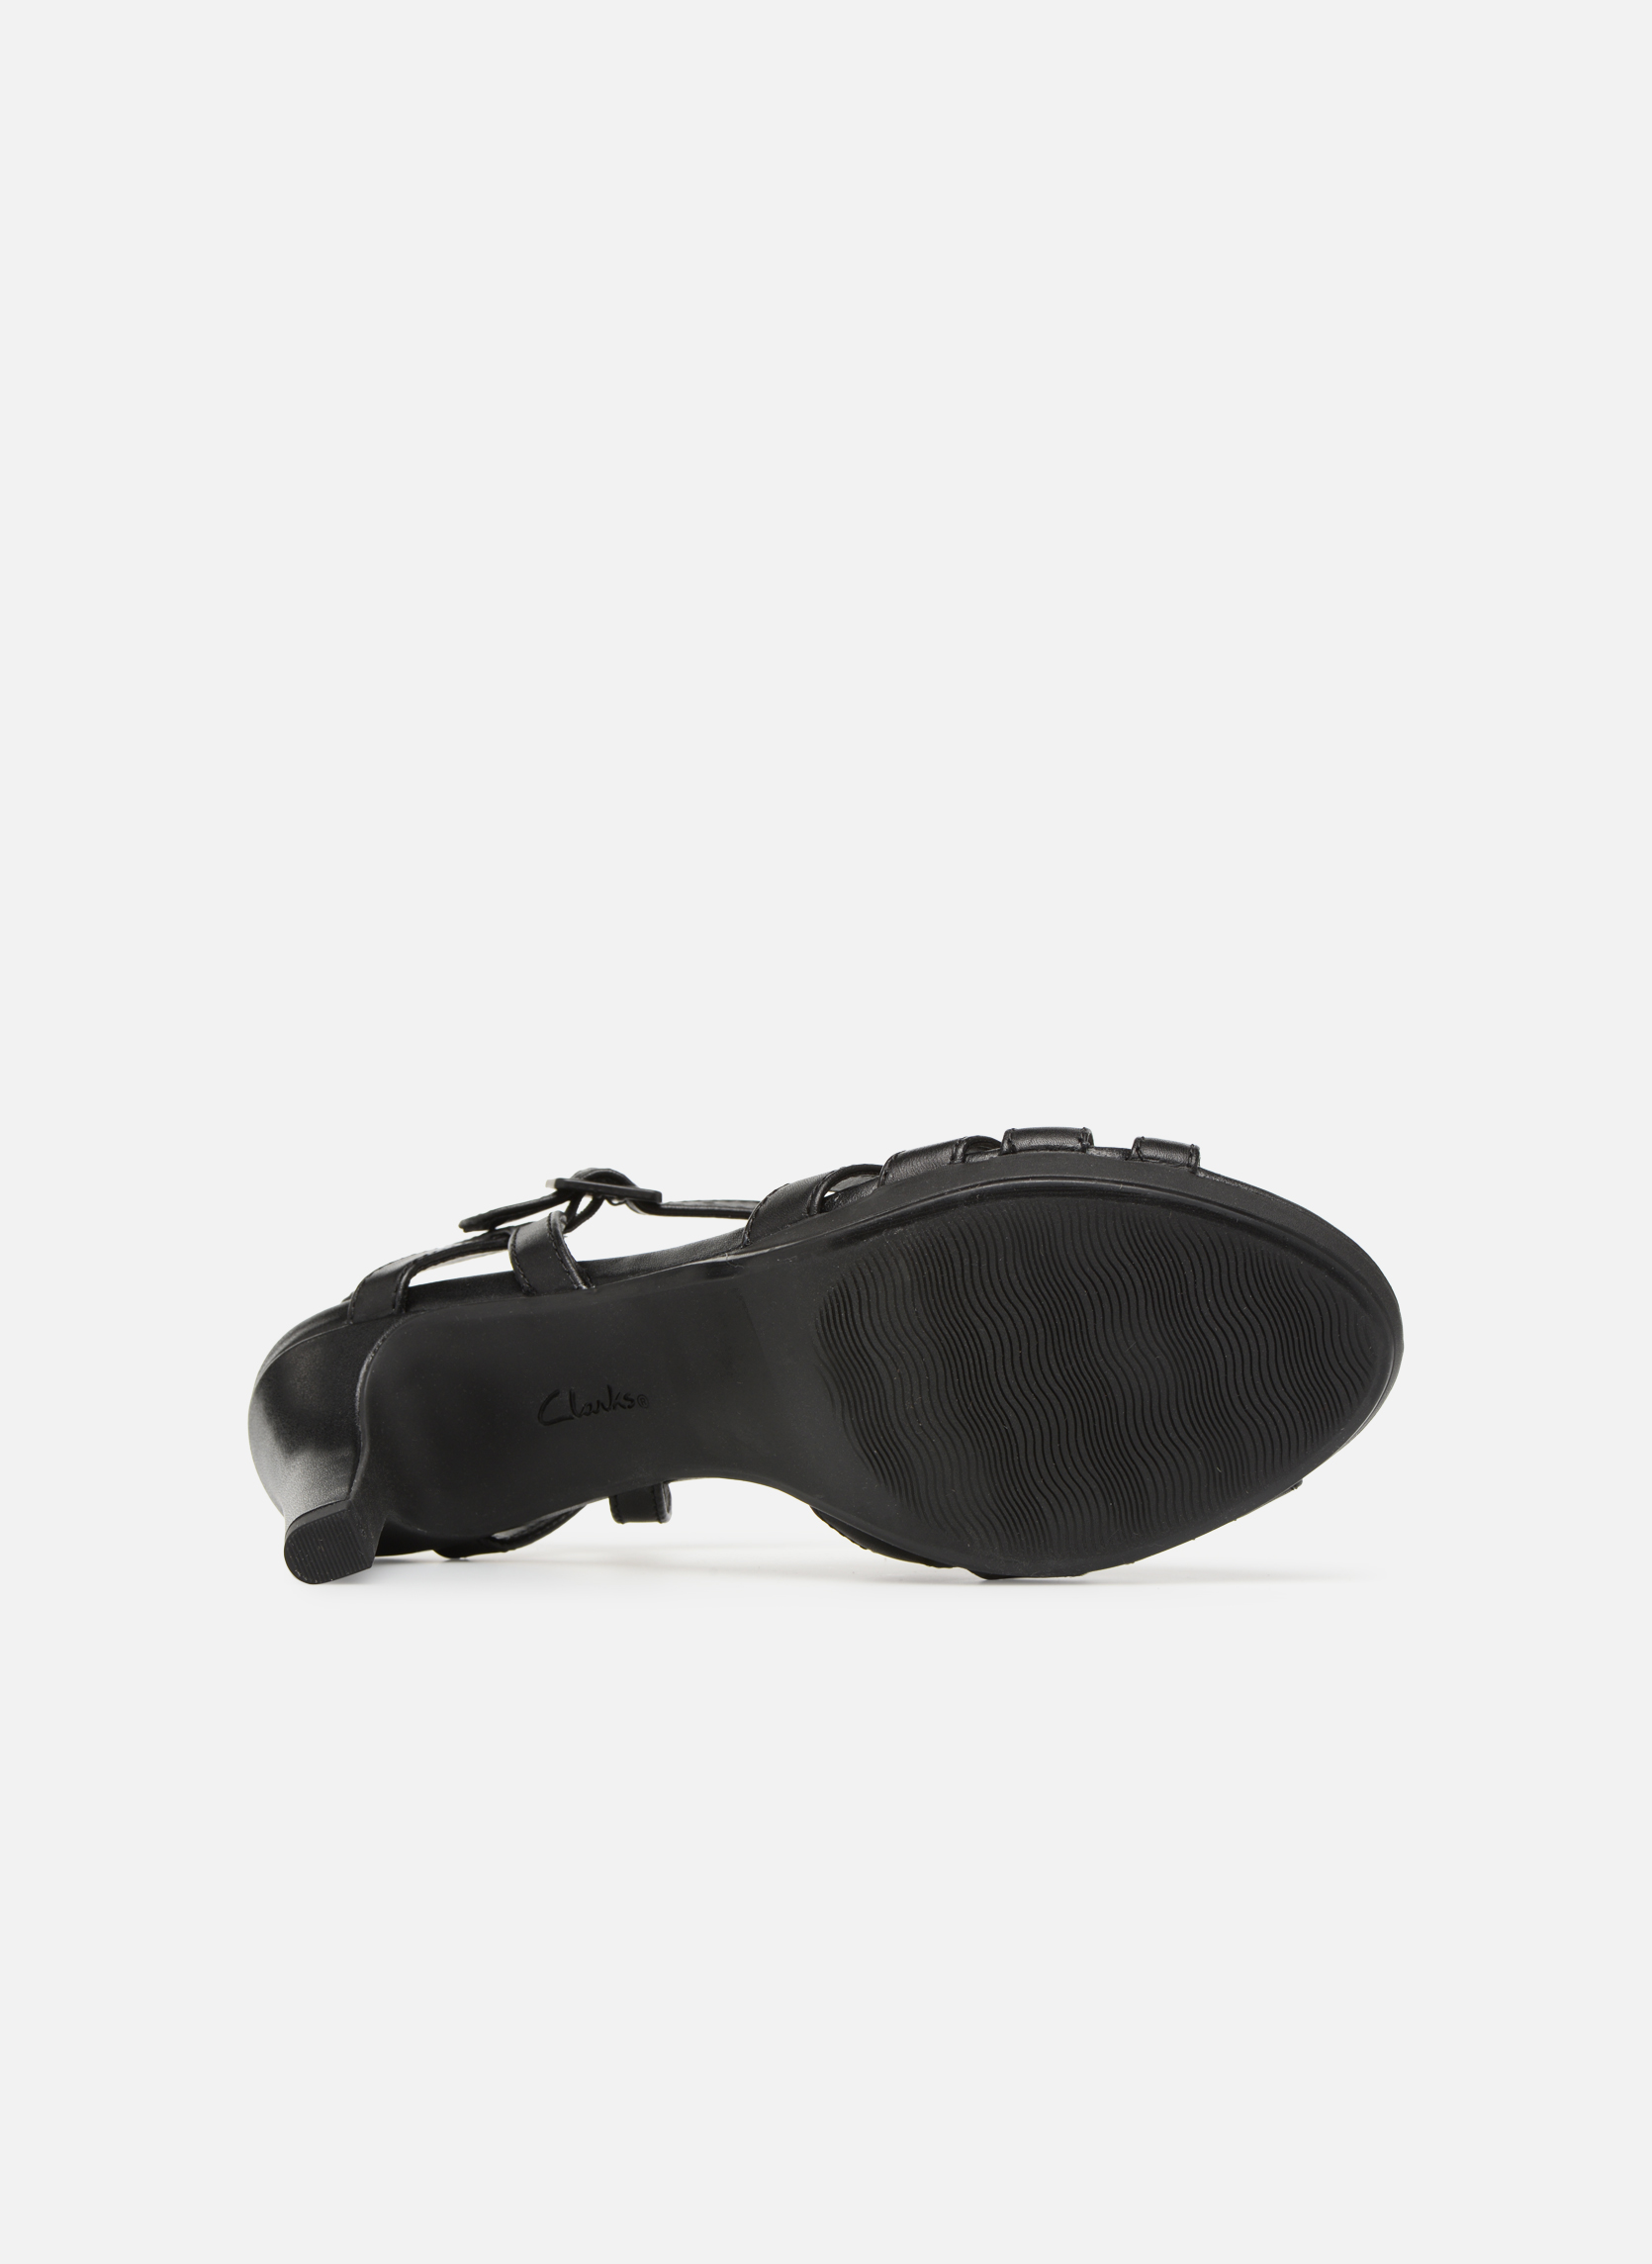 Sandals Clarks Adriel wavy Black view from above